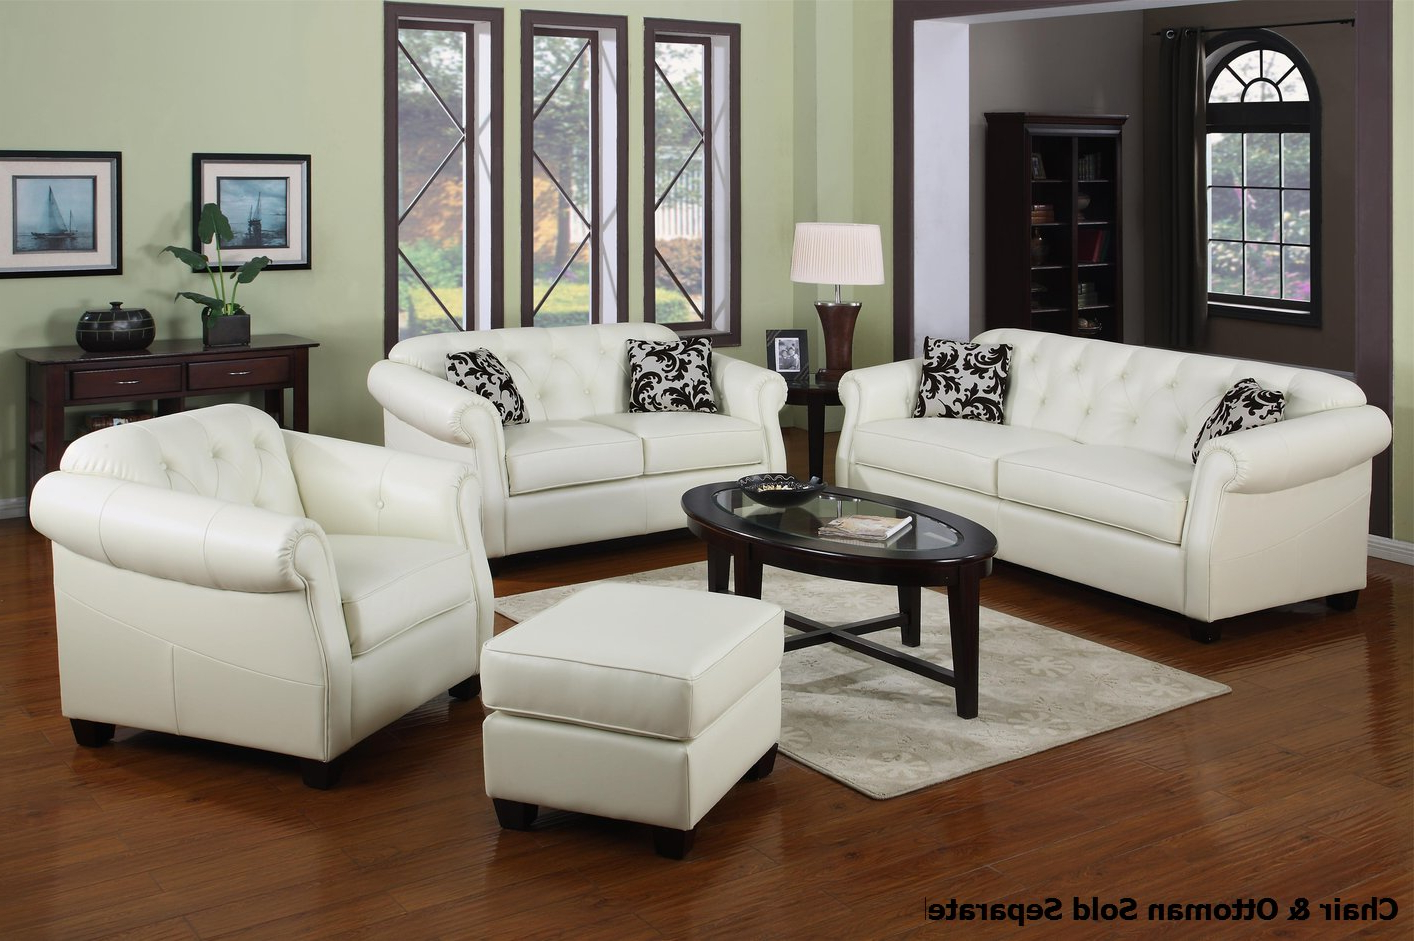 Fashionable For And Loveseat Covers Couches Combo Chair Set Double Small Costco Within Sofa Loveseat And Chair Set (View 8 of 20)